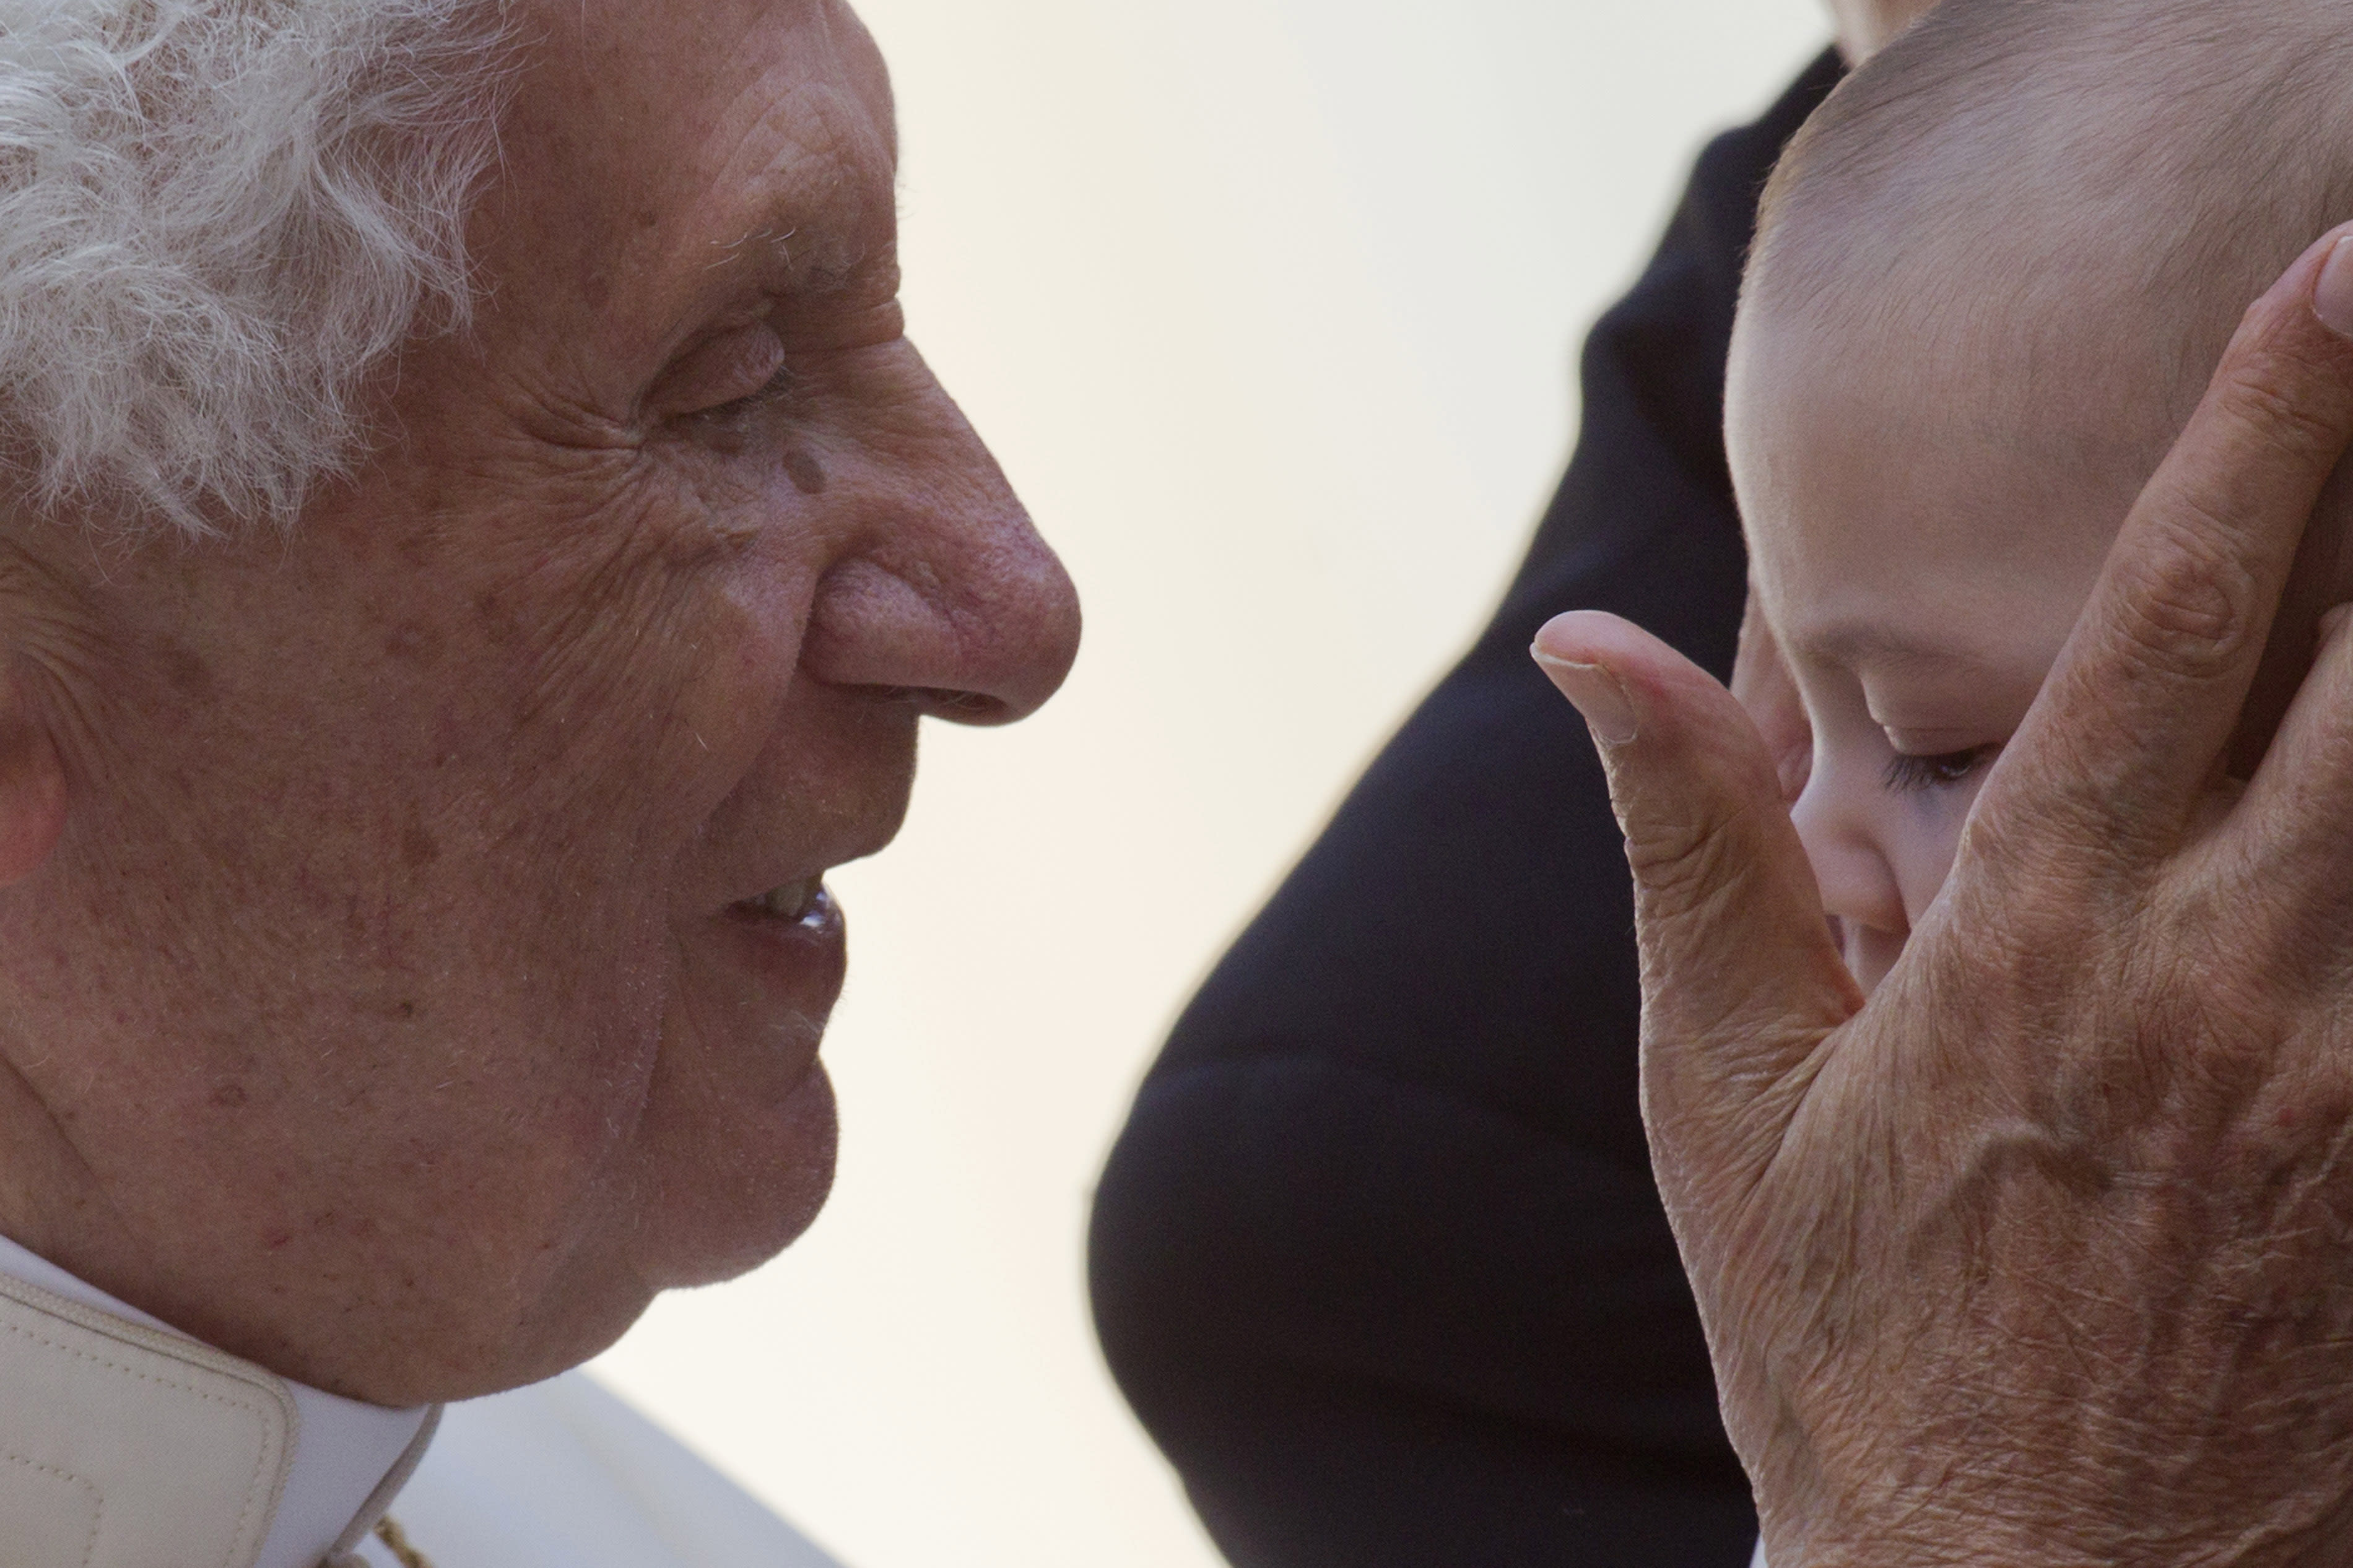 Pope Benedict XVI blesses blesses a baby at the end of his weekly general audience, in St. Peter's Square at the Vatican, Wednesday, Oct. 24, 2012. Benedict has named six new cardinals, adding prelates from Lebanon, the Philippines, Nigeria, Colombia, India and the United States to the ranks of cardinals who will elect his successor. He made the surprise announcement during the audience and said they would be elevated at a consistory Nov. 24. (AP Photo/Andrew Medichini)